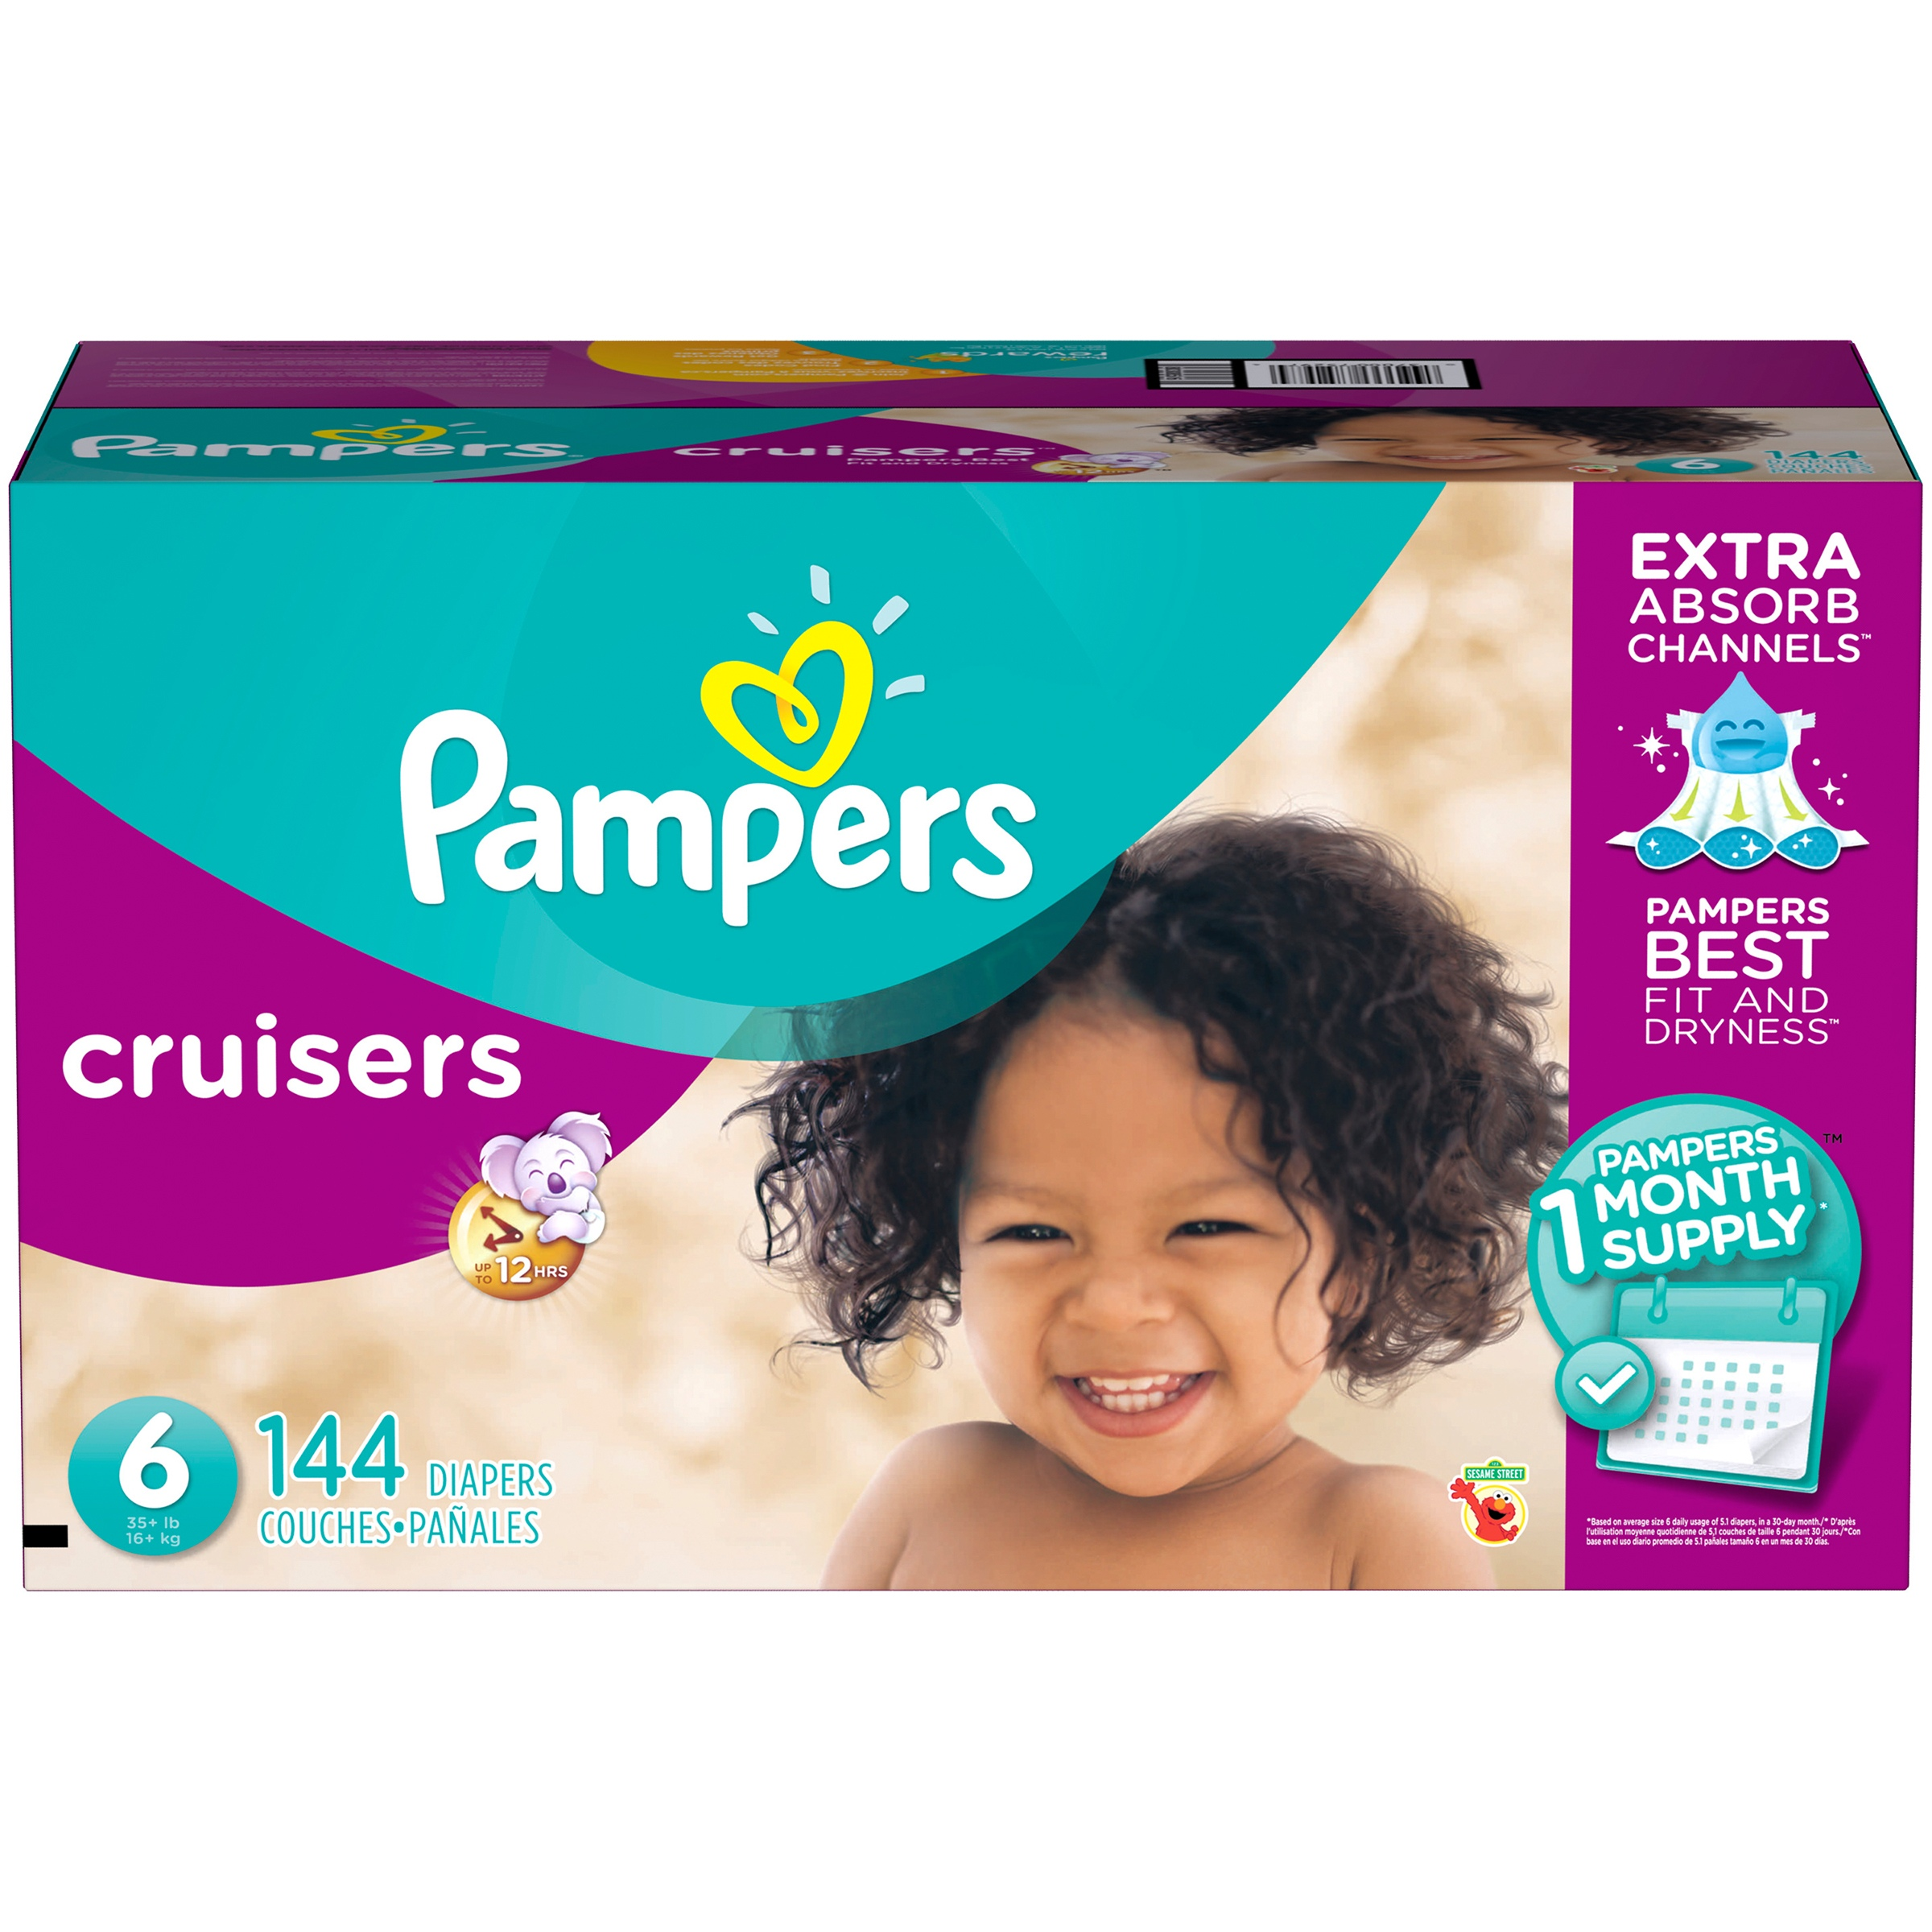 Pampers Cruisers Diapers, Size 6, 144 Count